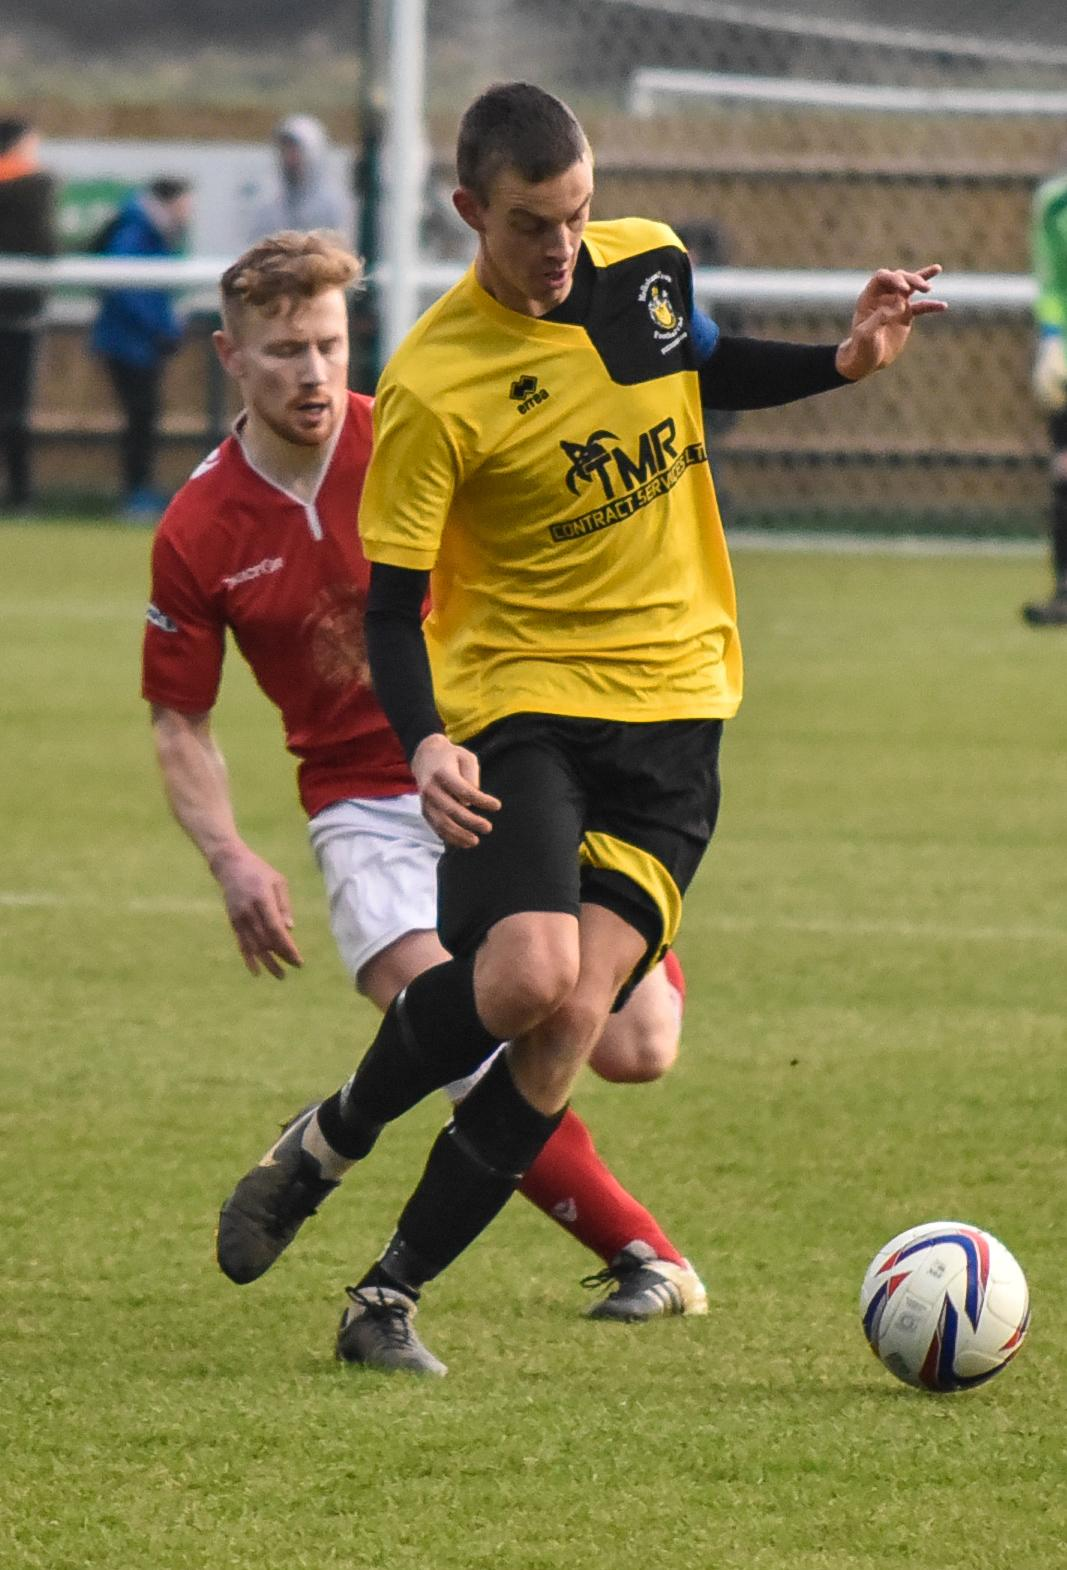 Melksham town into last 16 of fa vase after home win wiltshire times melksham town 2 crowborough athletic 1 fa vase fourth round saturday january 6 2018 reviewsmspy